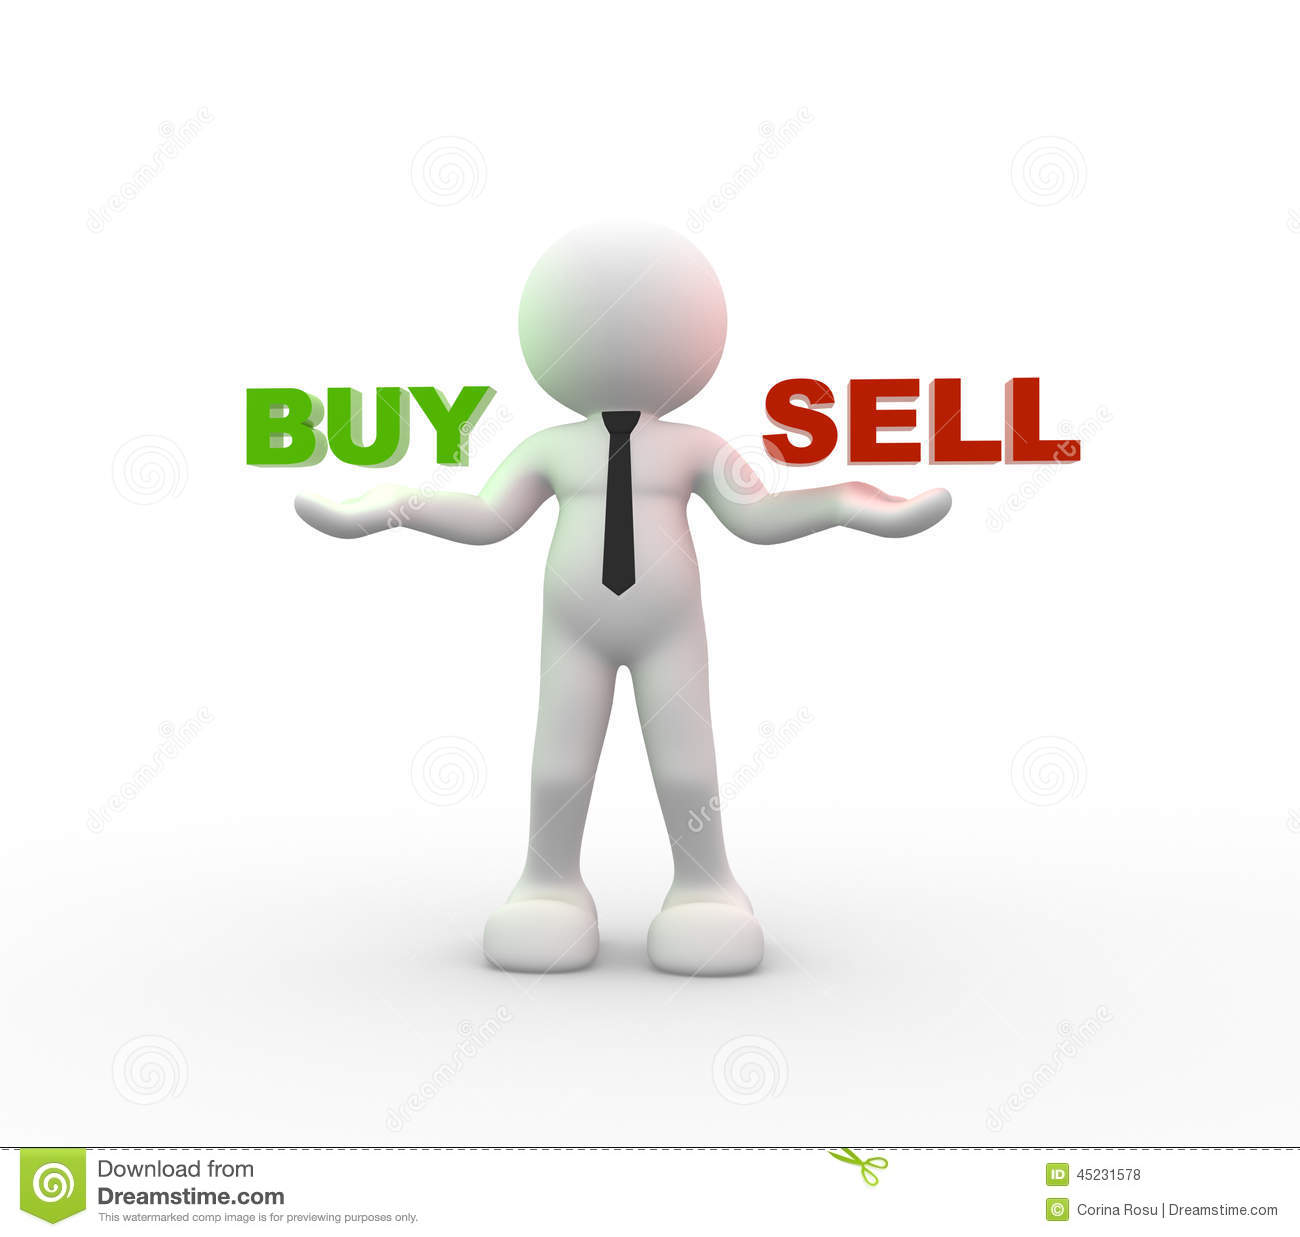 how to sell and buy at the same time